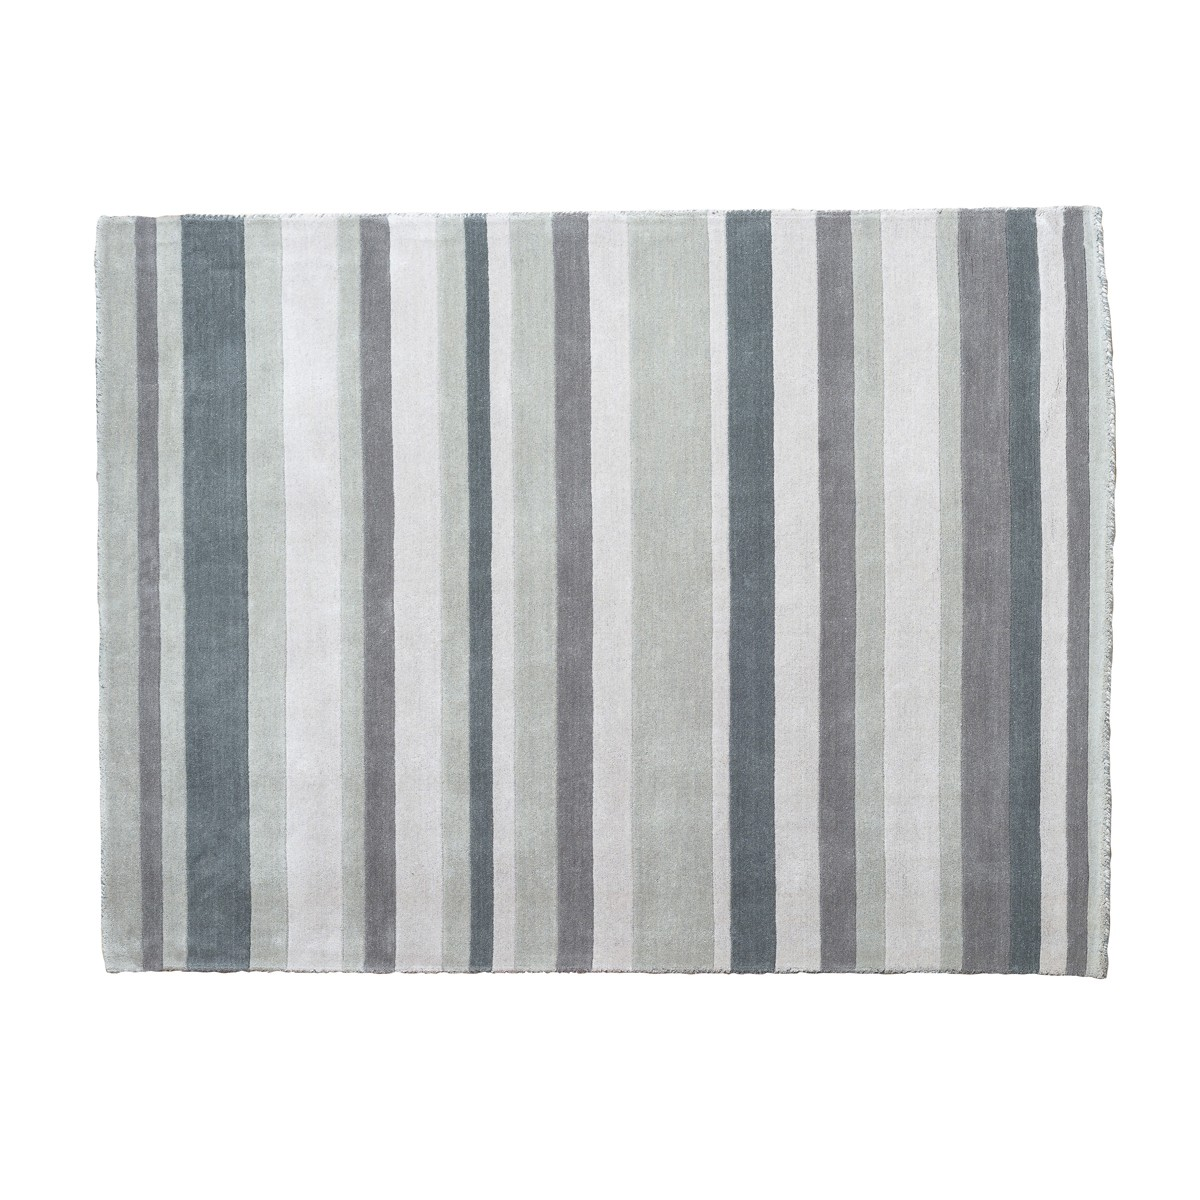 Lavender -  Multi stripe design Rug in Greys